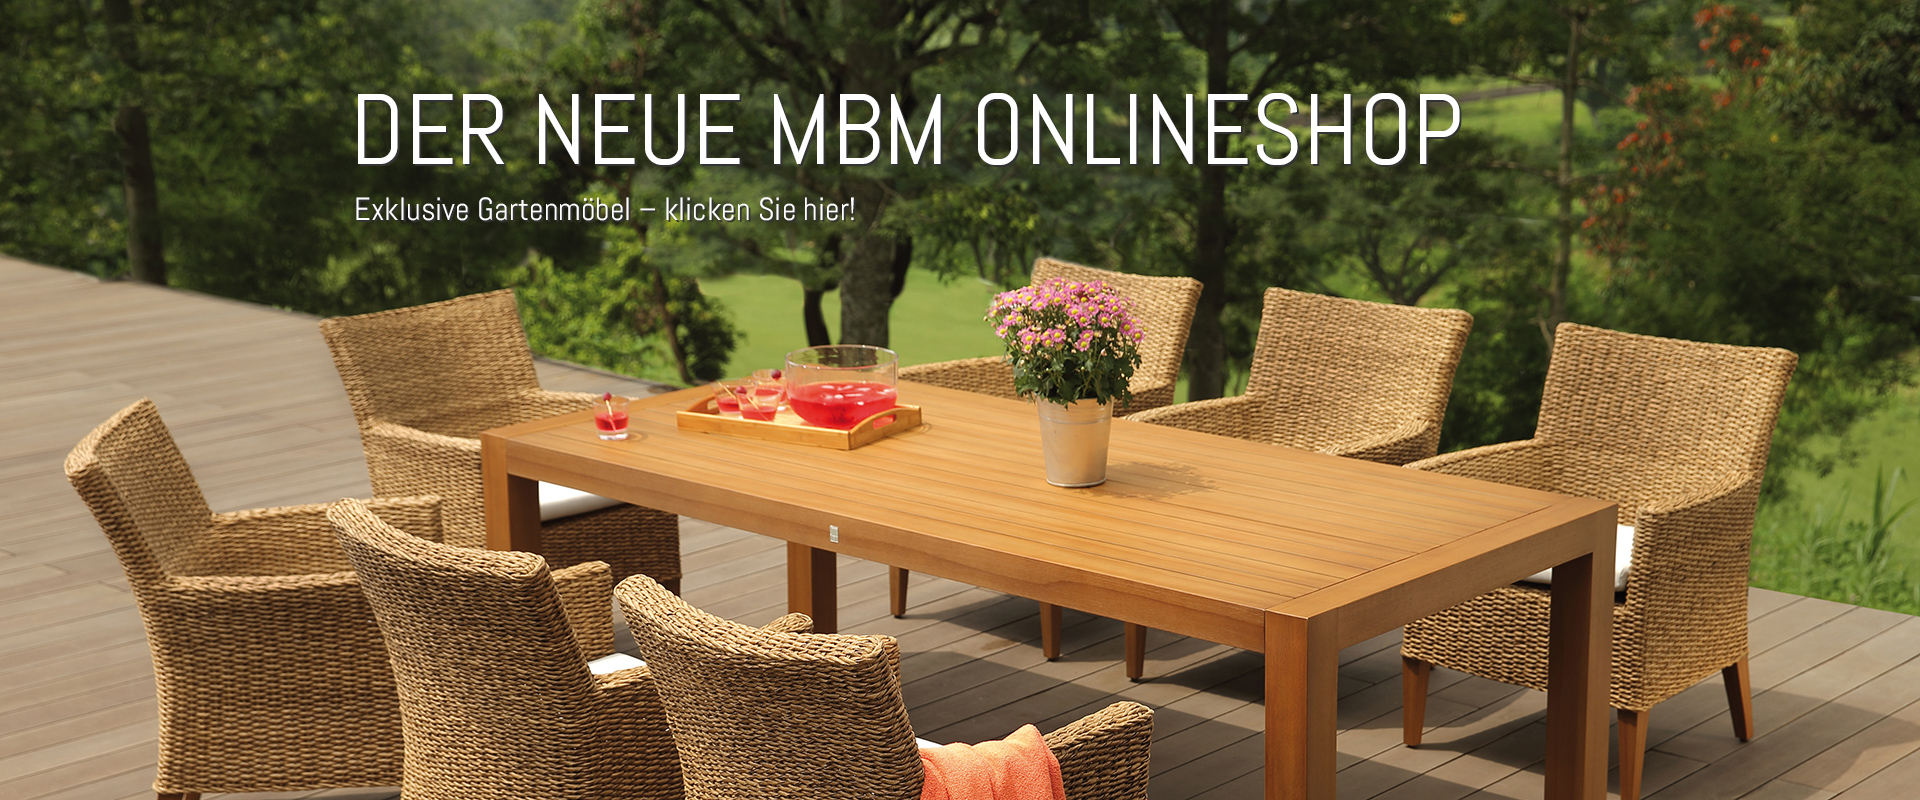 mbm hochwertige gartenm bel onlineshop m nchner. Black Bedroom Furniture Sets. Home Design Ideas